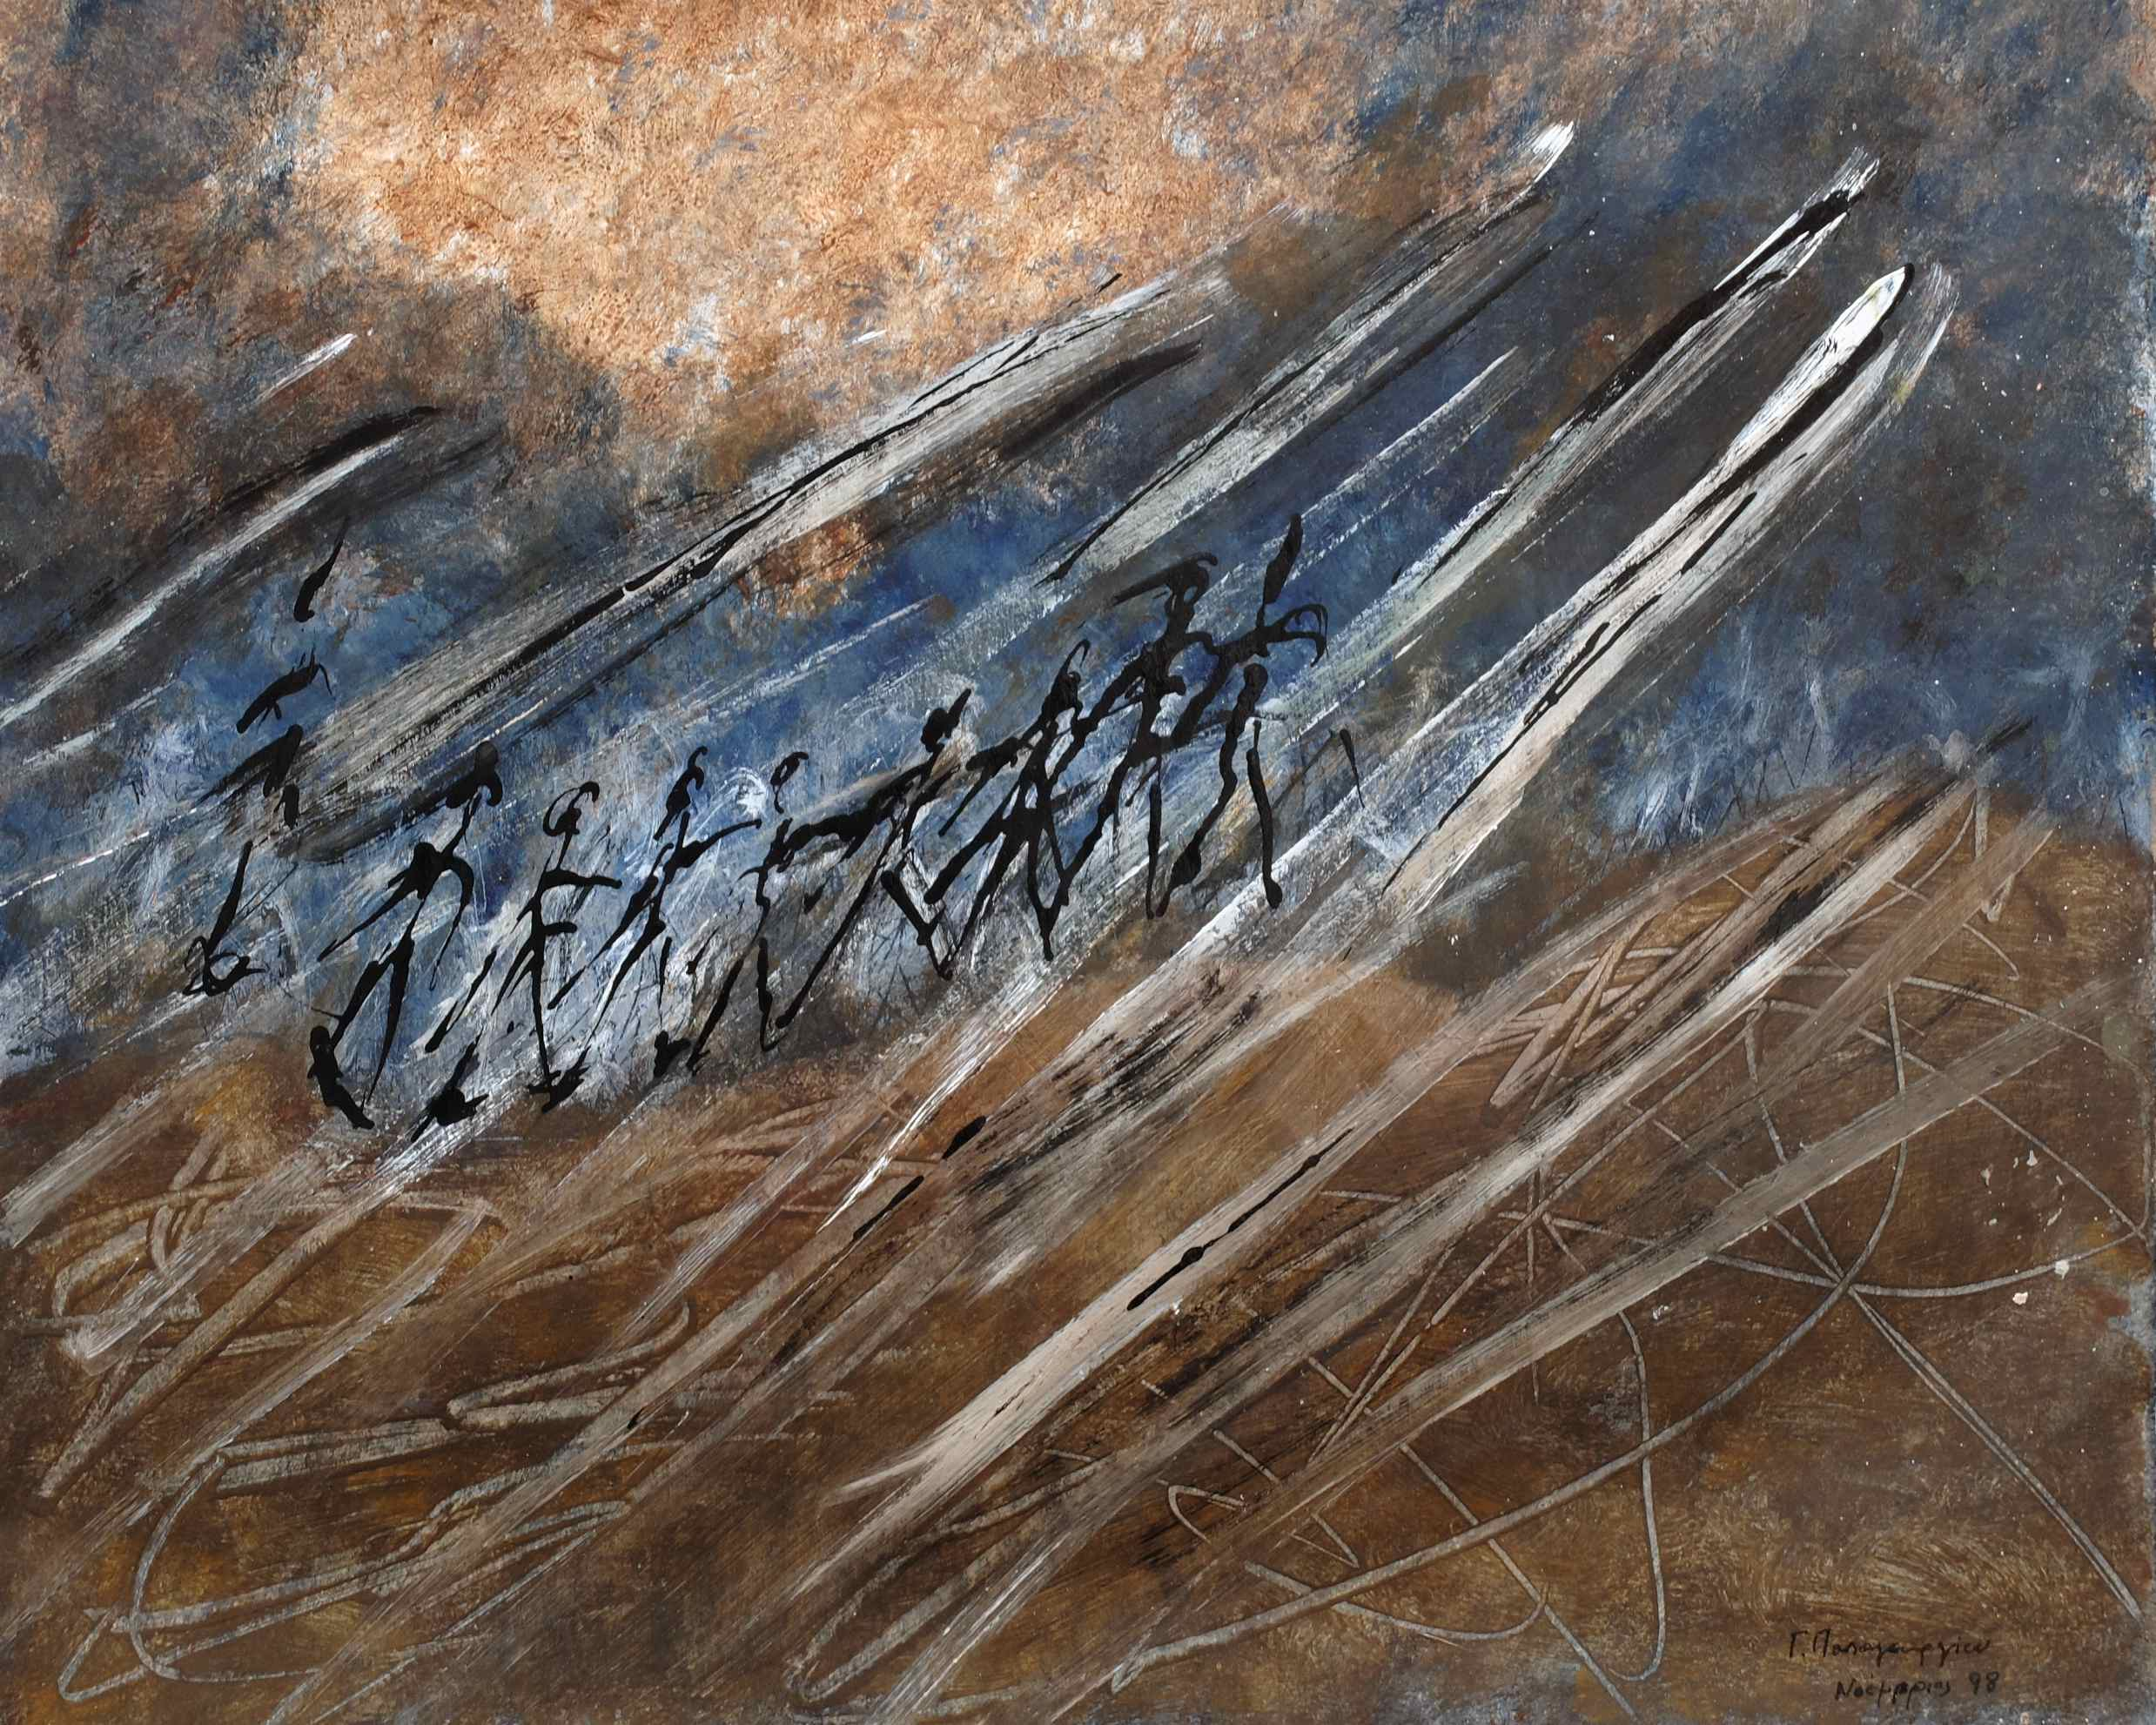 sans titre; mixed media on paper; 49x60; 1998